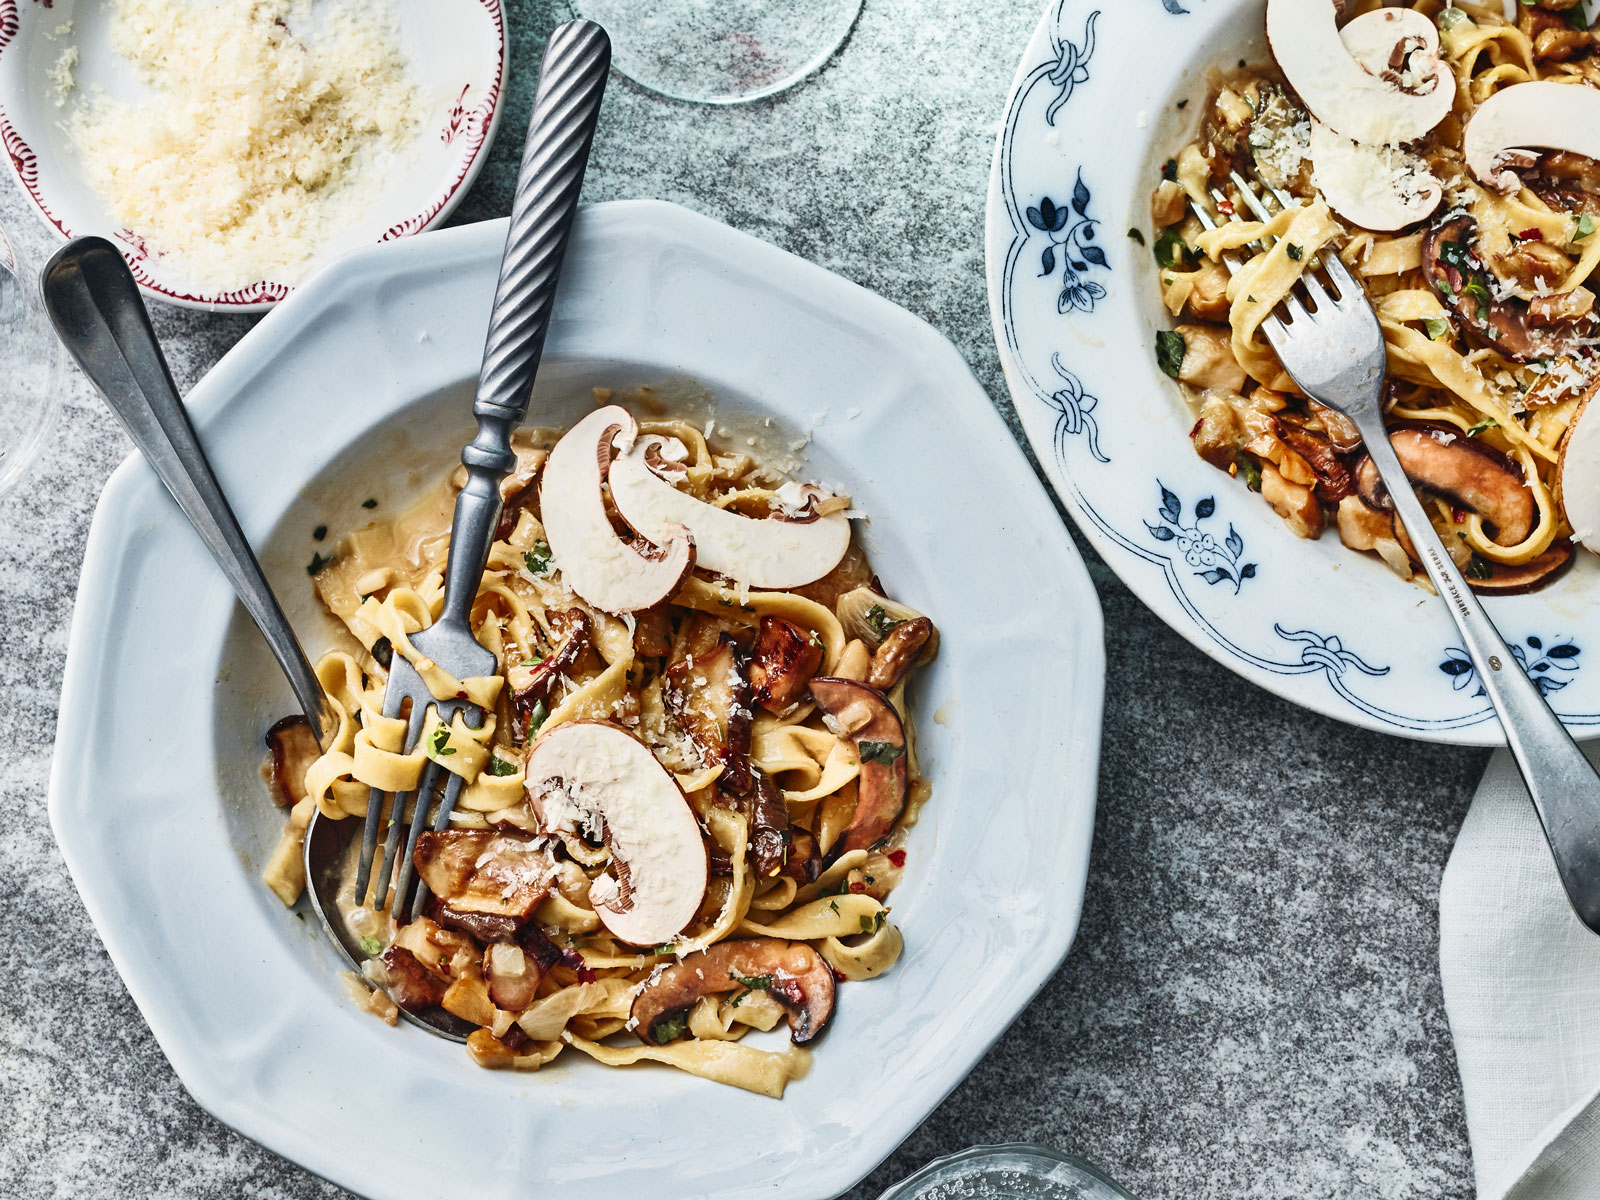 Hand-cut Tagliatelle with Porcini and Herbs